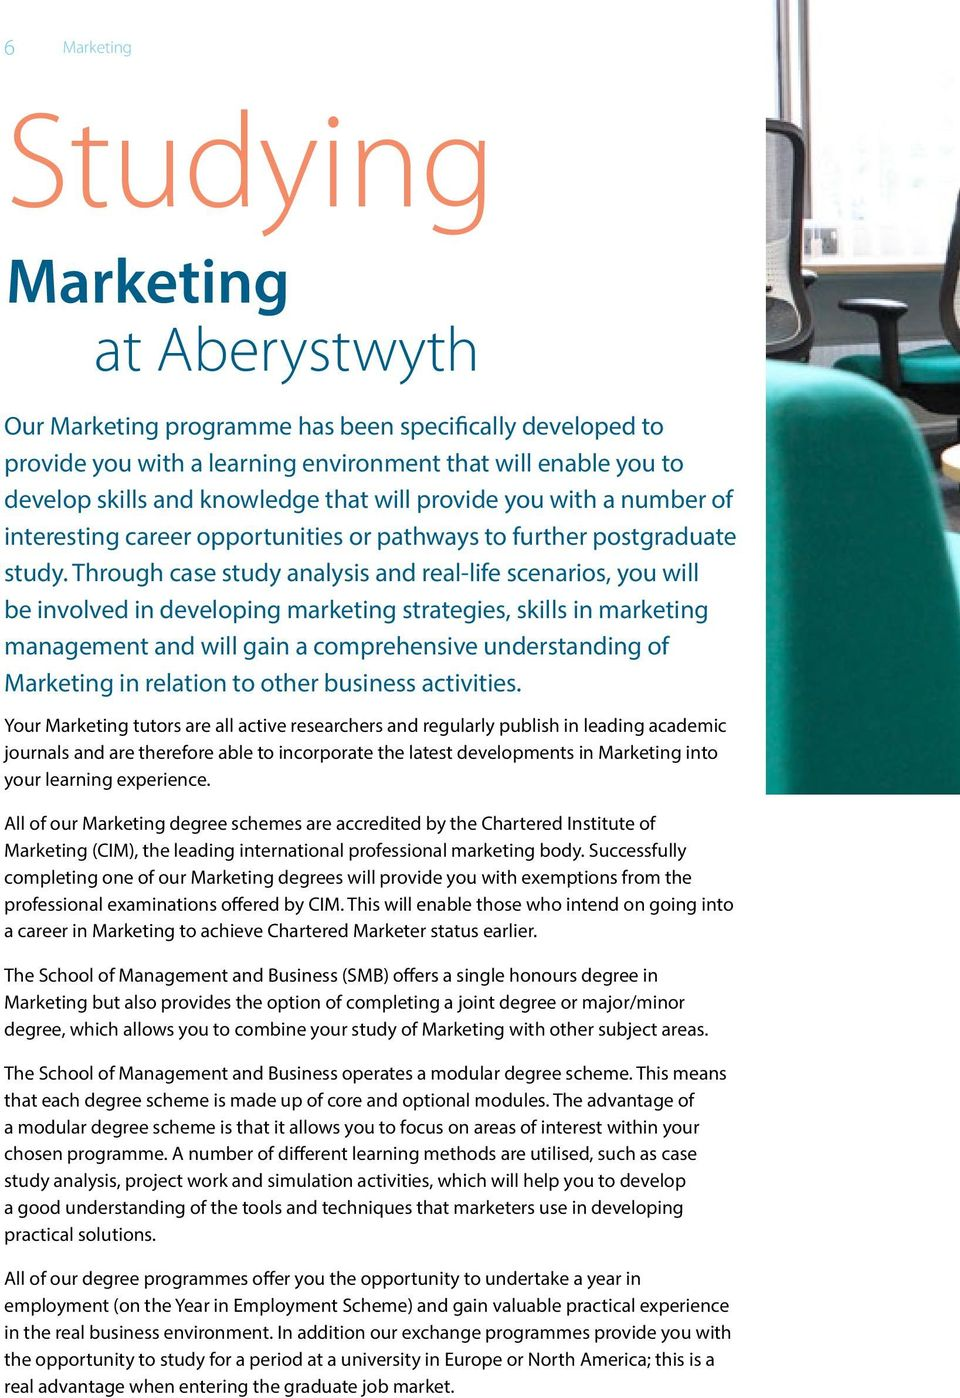 Through case study analysis and real-life scenarios, you will be involved in developing marketing strategies, skills in marketing management and will gain a comprehensive understanding of Marketing